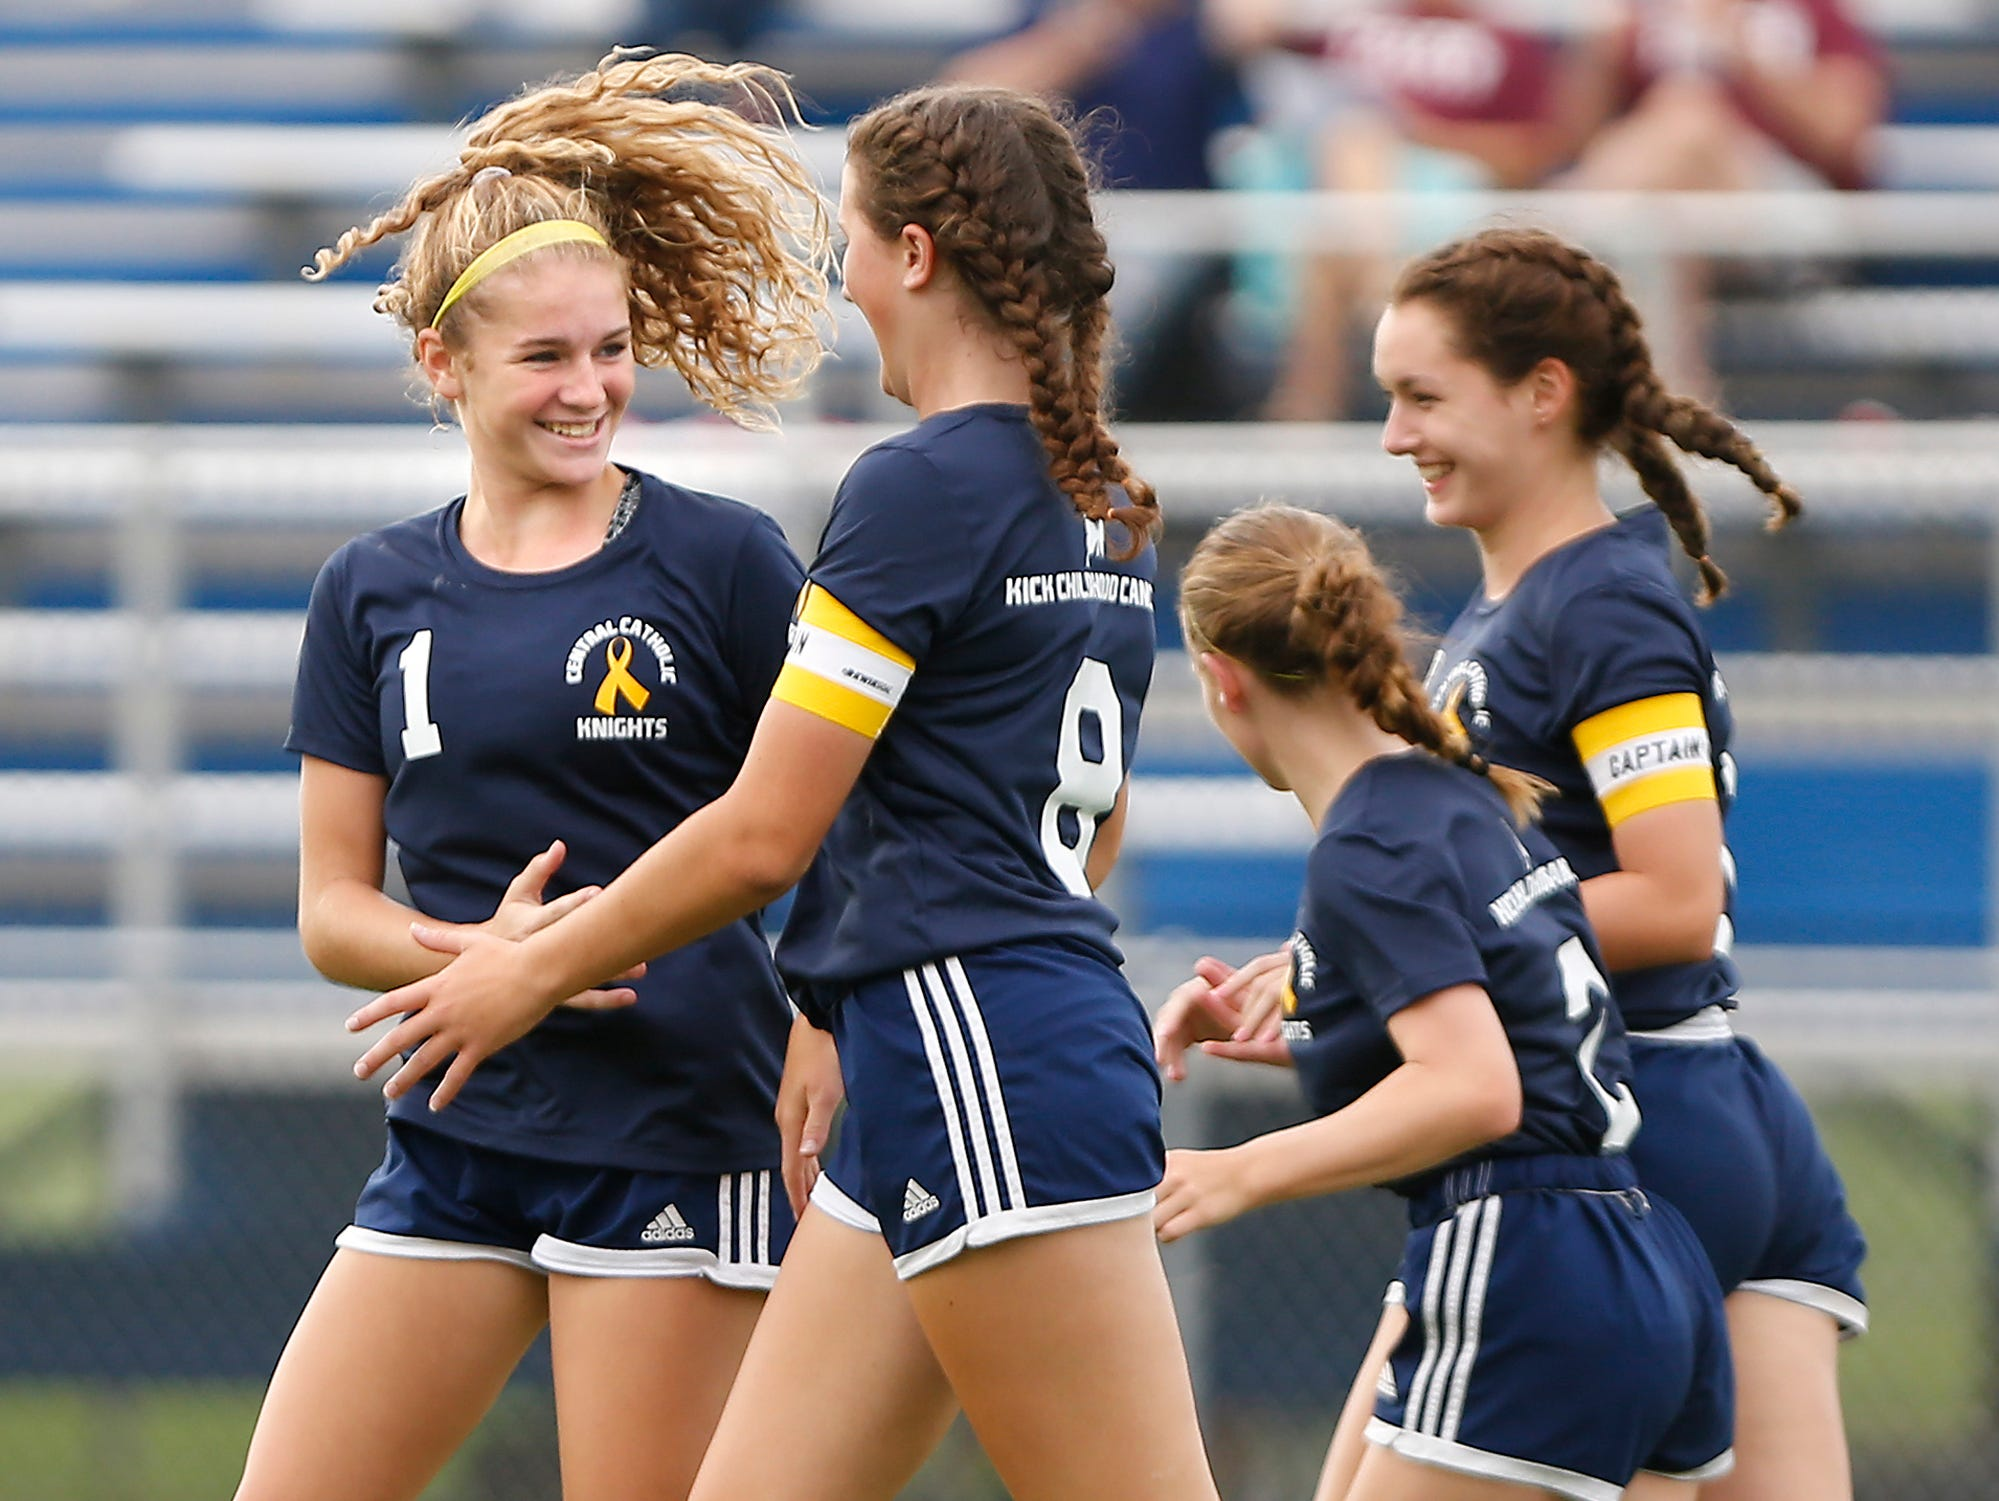 Karsyn Cherry, left, celebrates with Emma Bullock and her Central Catholic teammates after scoring at 35:50 in the second half to put the Knights up 4-1 over Faith Christian Tuesday, August 21, 2018, in Lafayette. Cherry had a hat trick as CC defeated Faith 7-1.